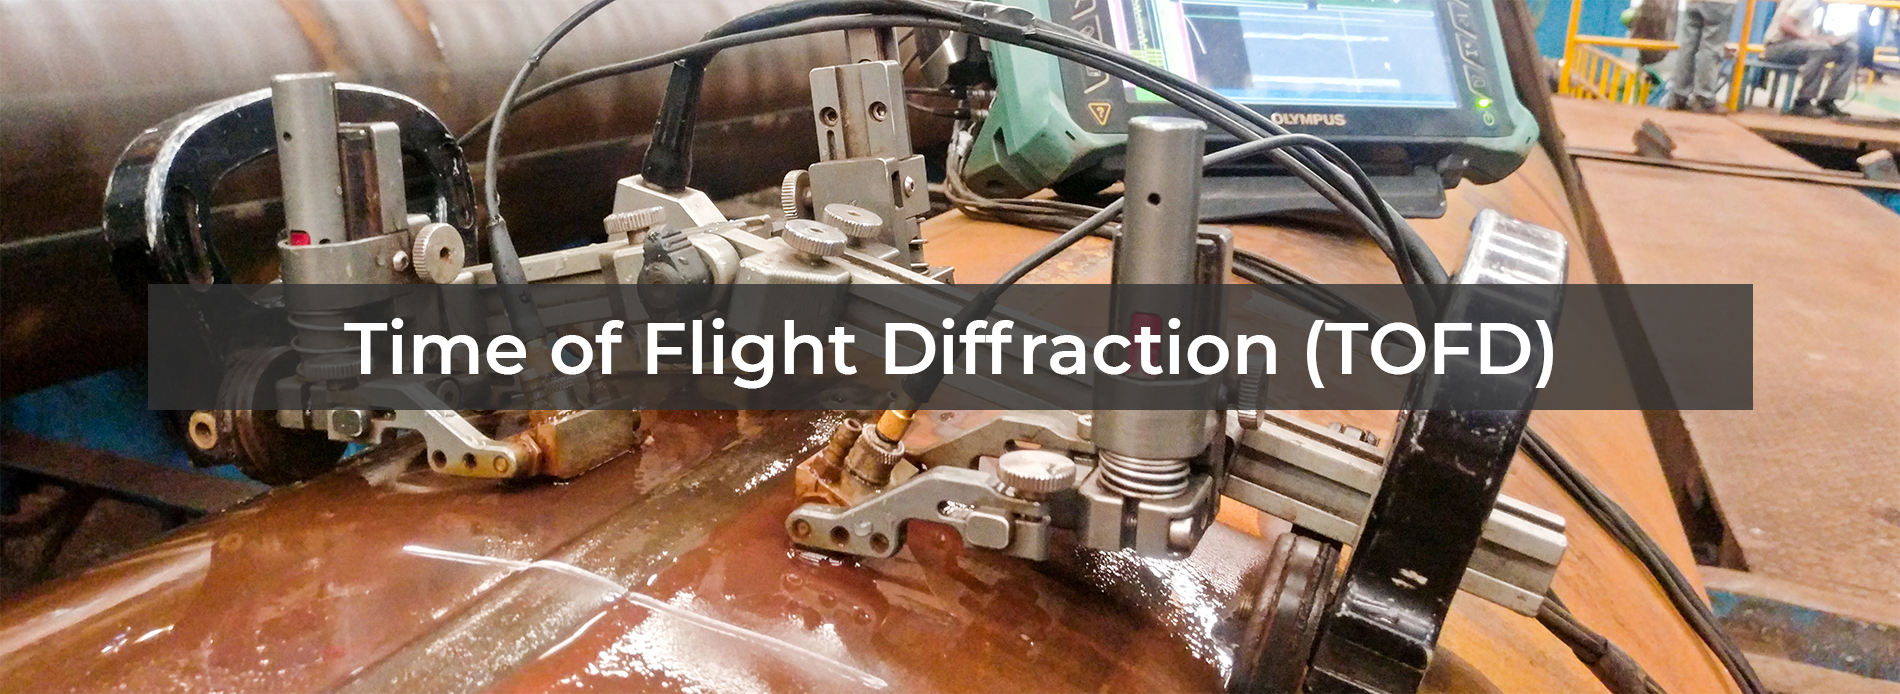 PCN Time of Flight Diffraction TOFD